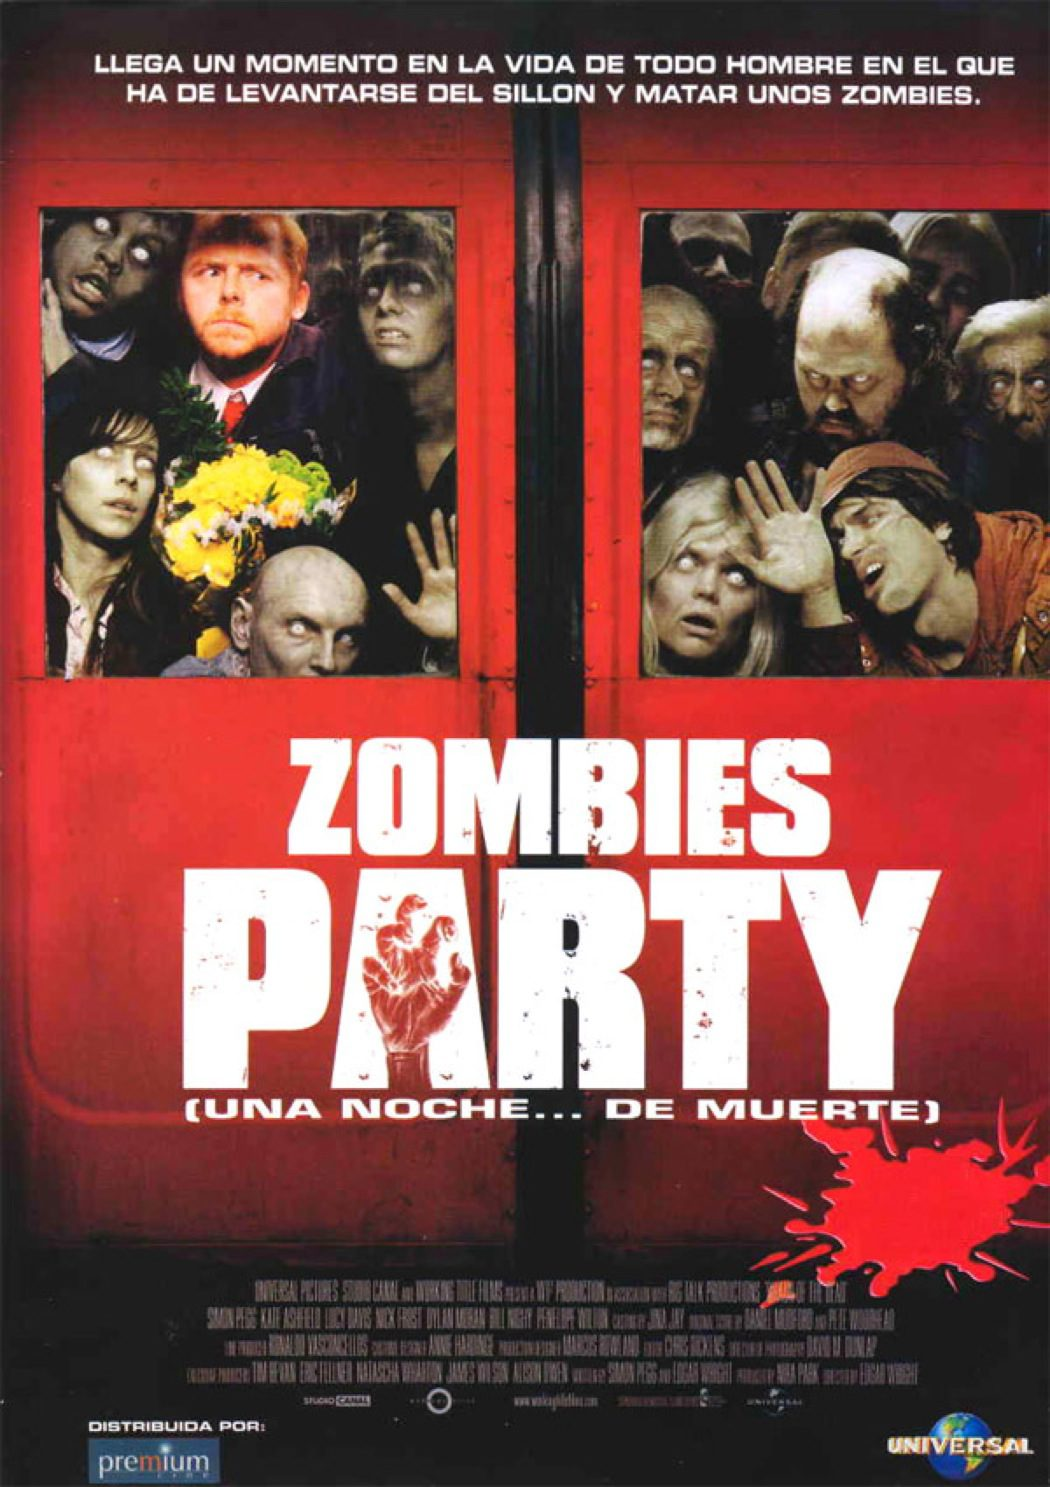 'Zombies Party'